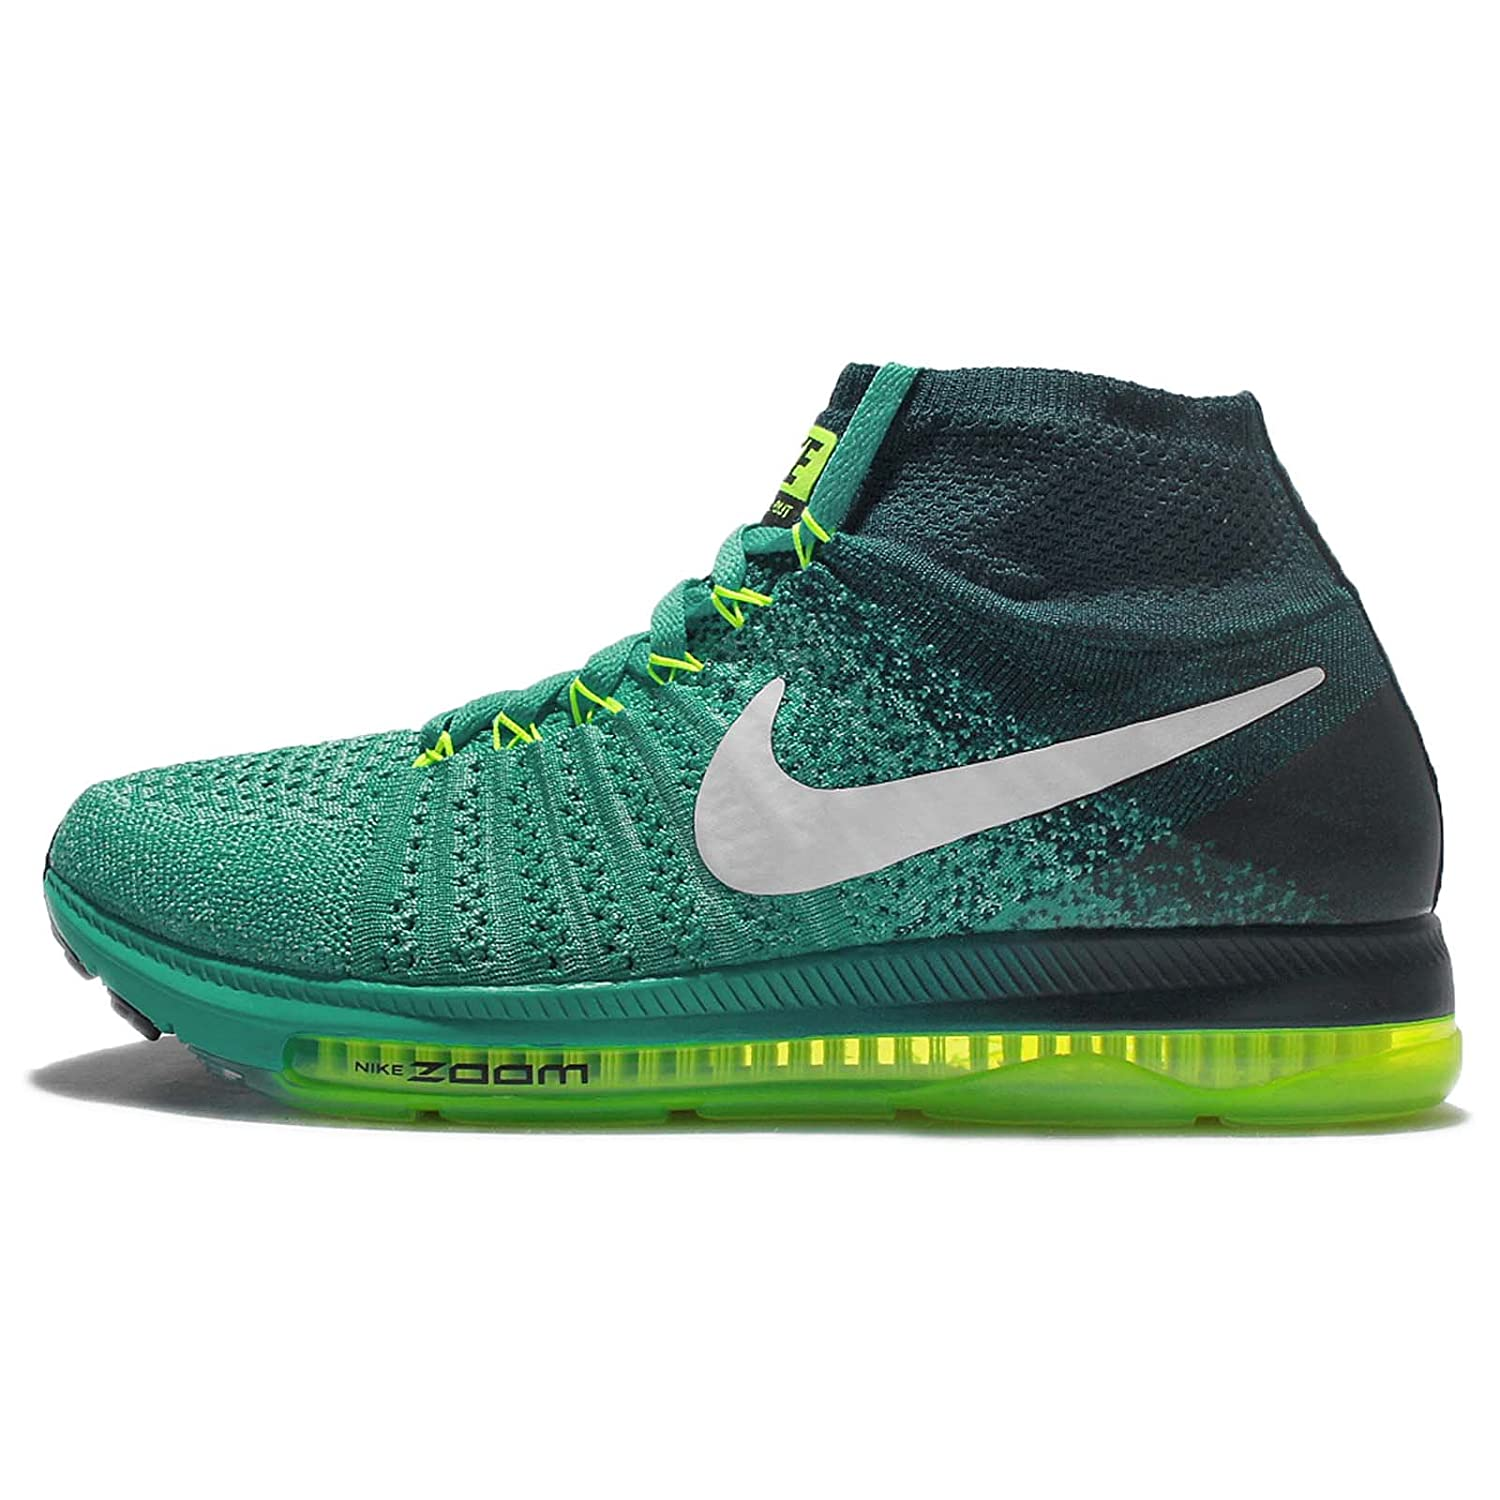 Nike Women's Zoom All Out Flyknit Running Shoes B0059597MI 6.5 B(M) US|Clear Jade/White-midnight Turq-volt